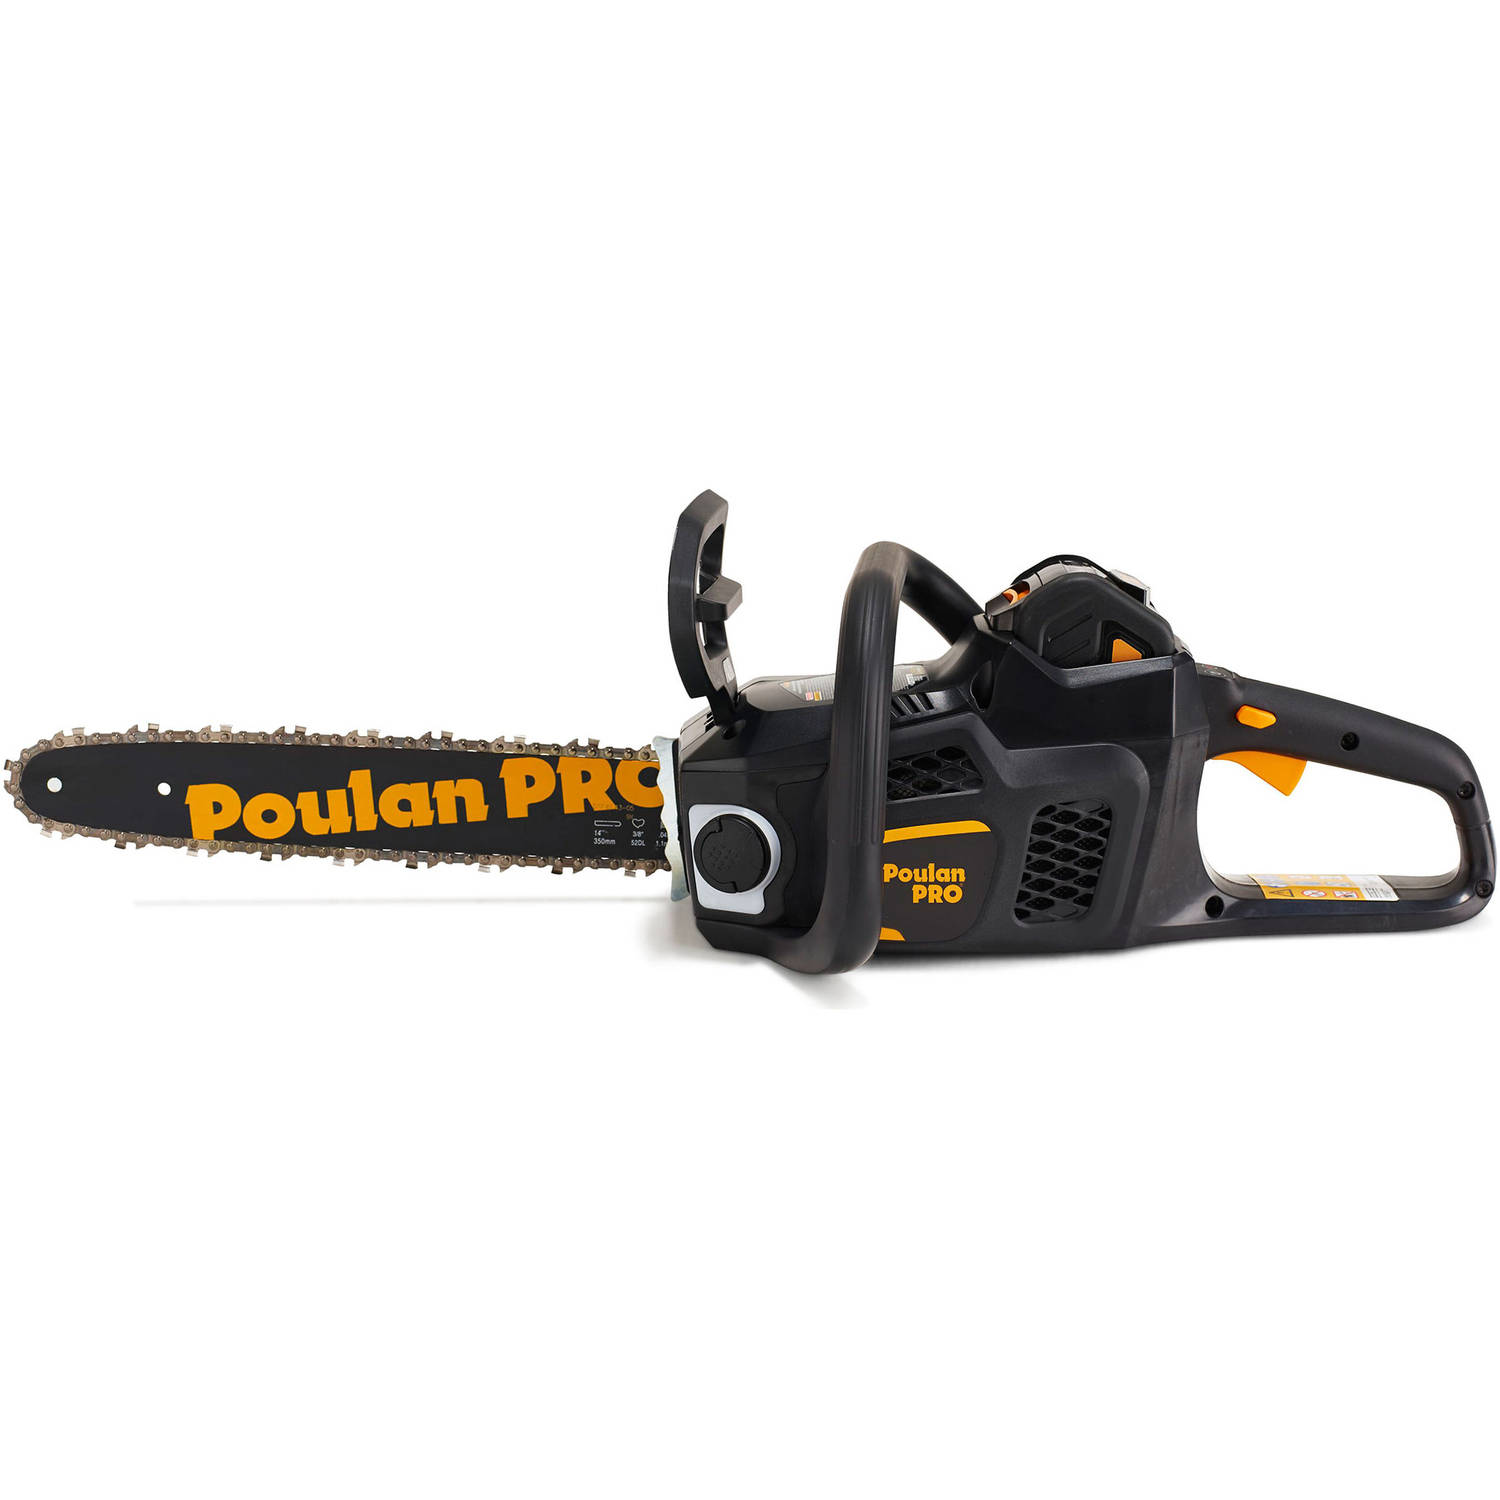 "Poulan Pro 40-Volt Lithium-Ion Rechargeable Battery 14"" Chainsaw by Husqvarna"